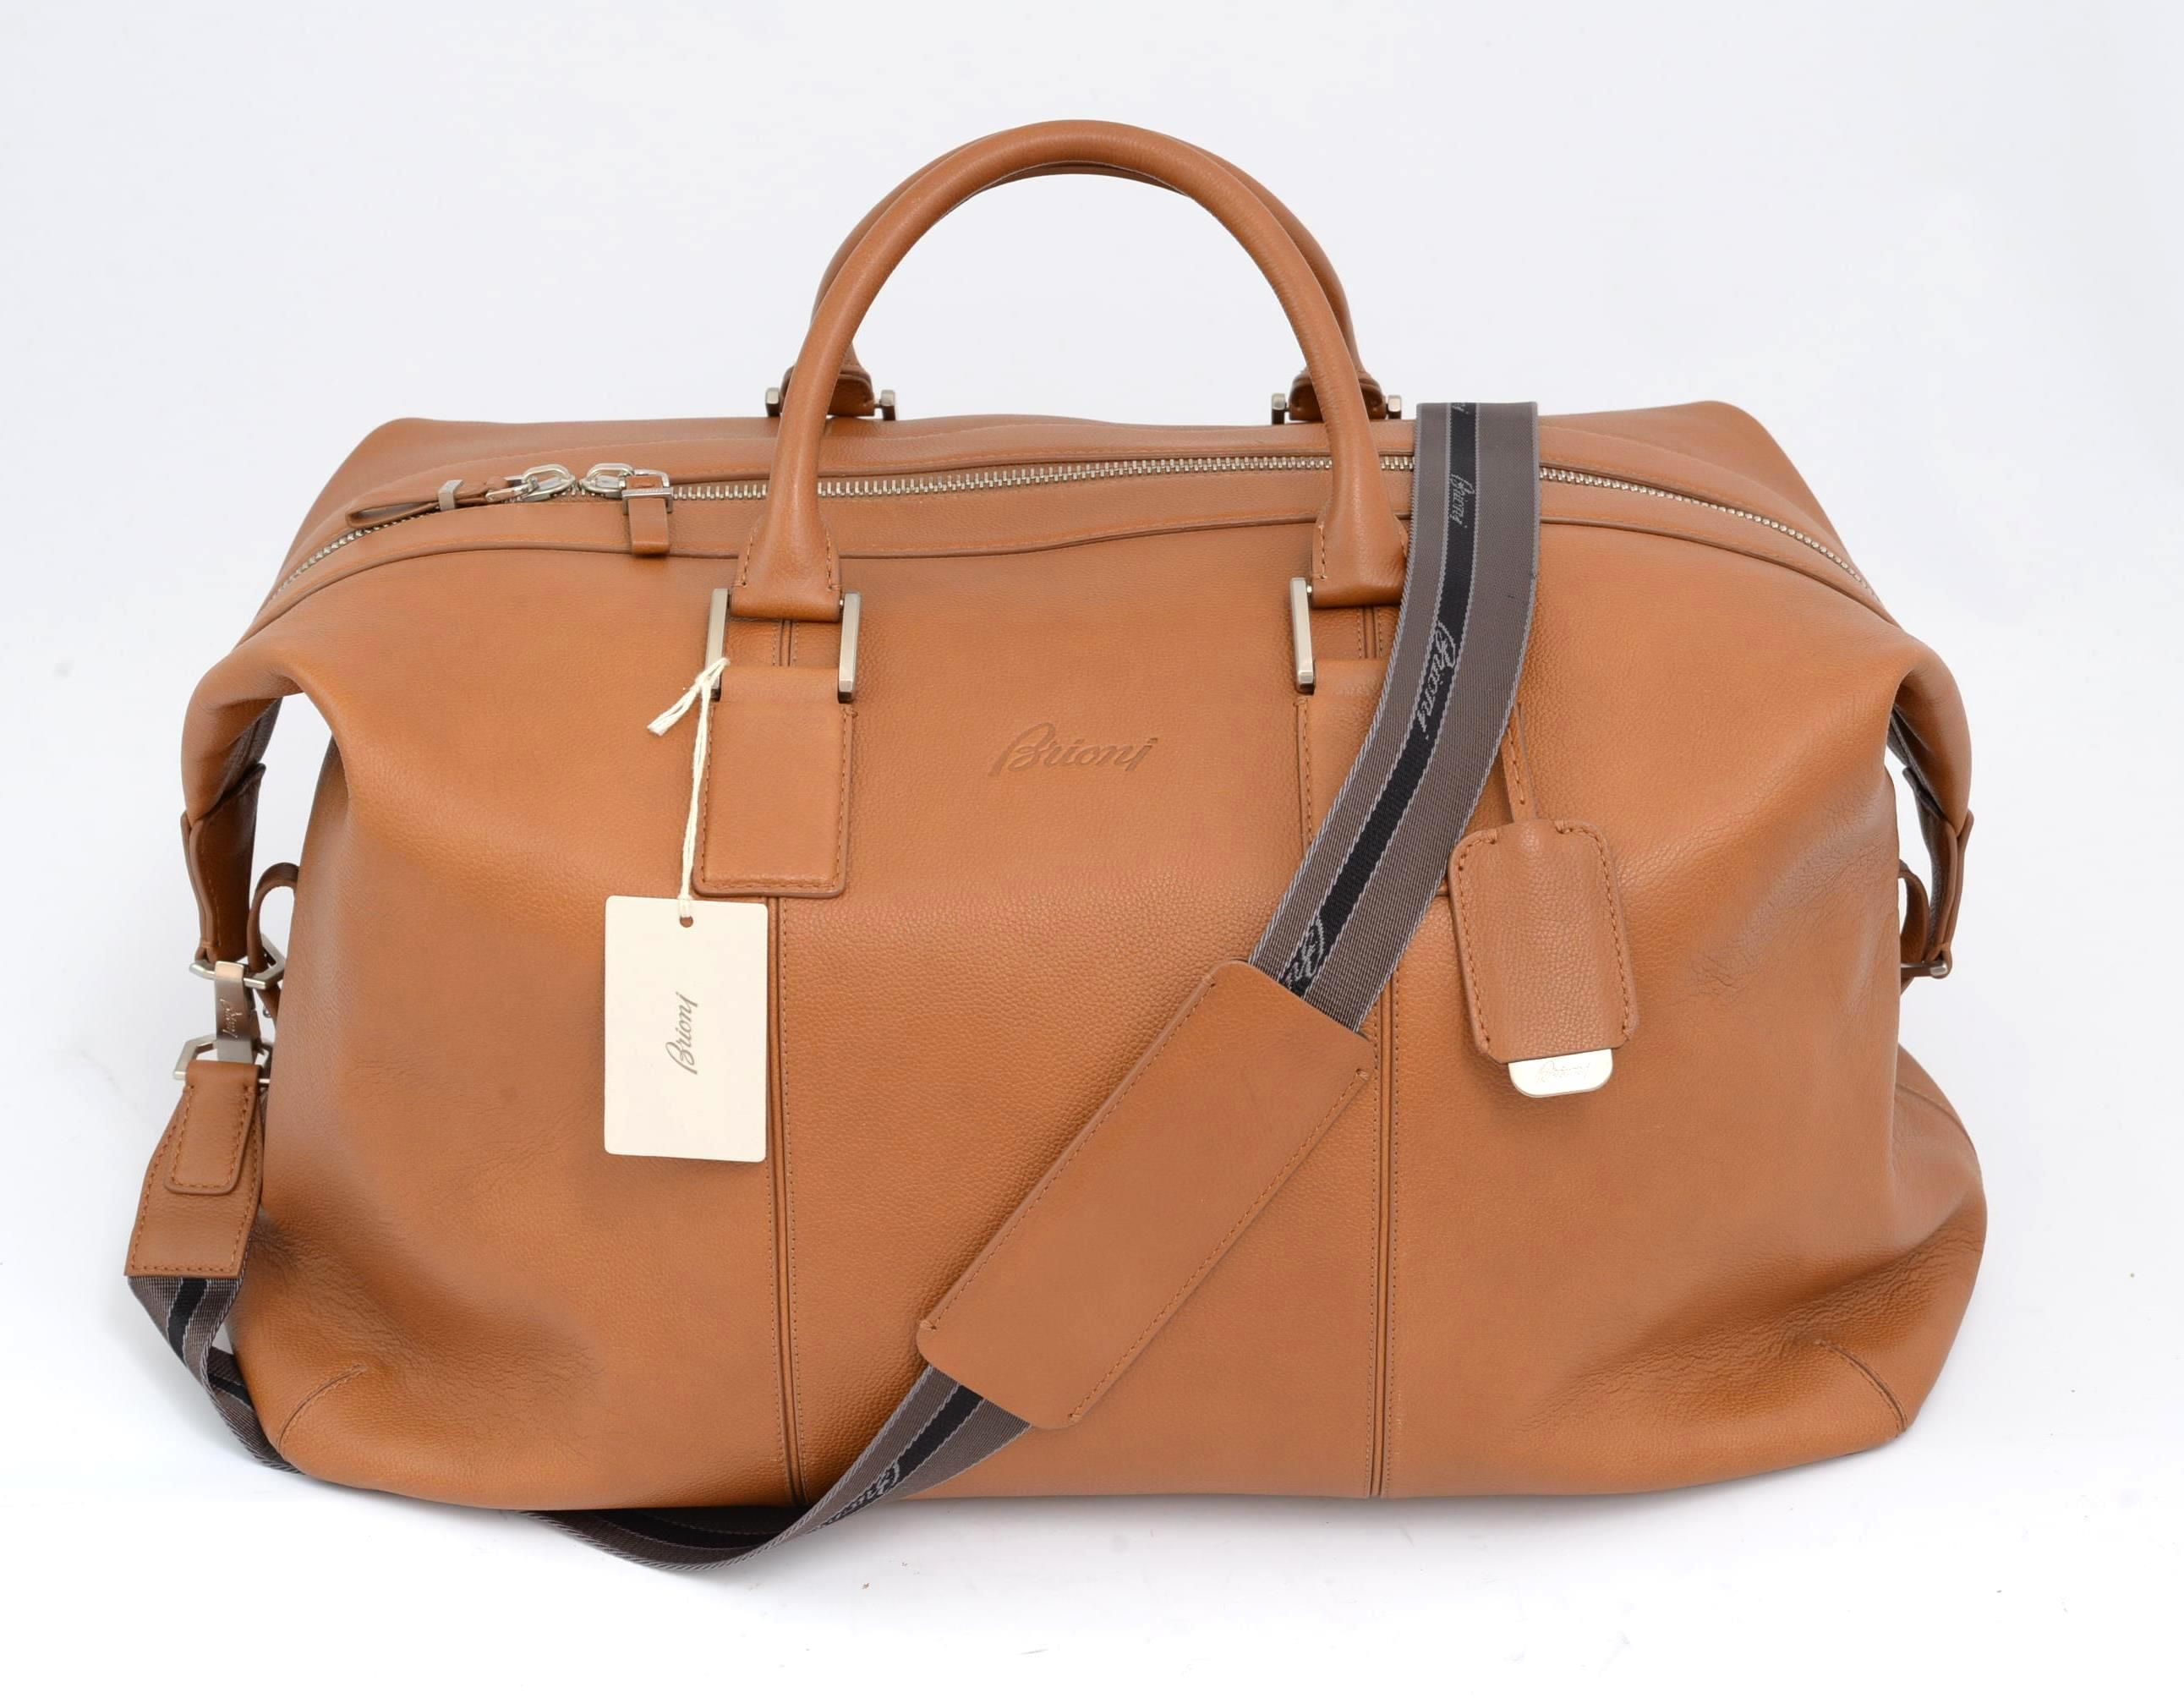 5fb347ddd45bc Striking treatment went into this Brioni Italy Tan Pebbled Calf Leather  Weekender Travel Bag!